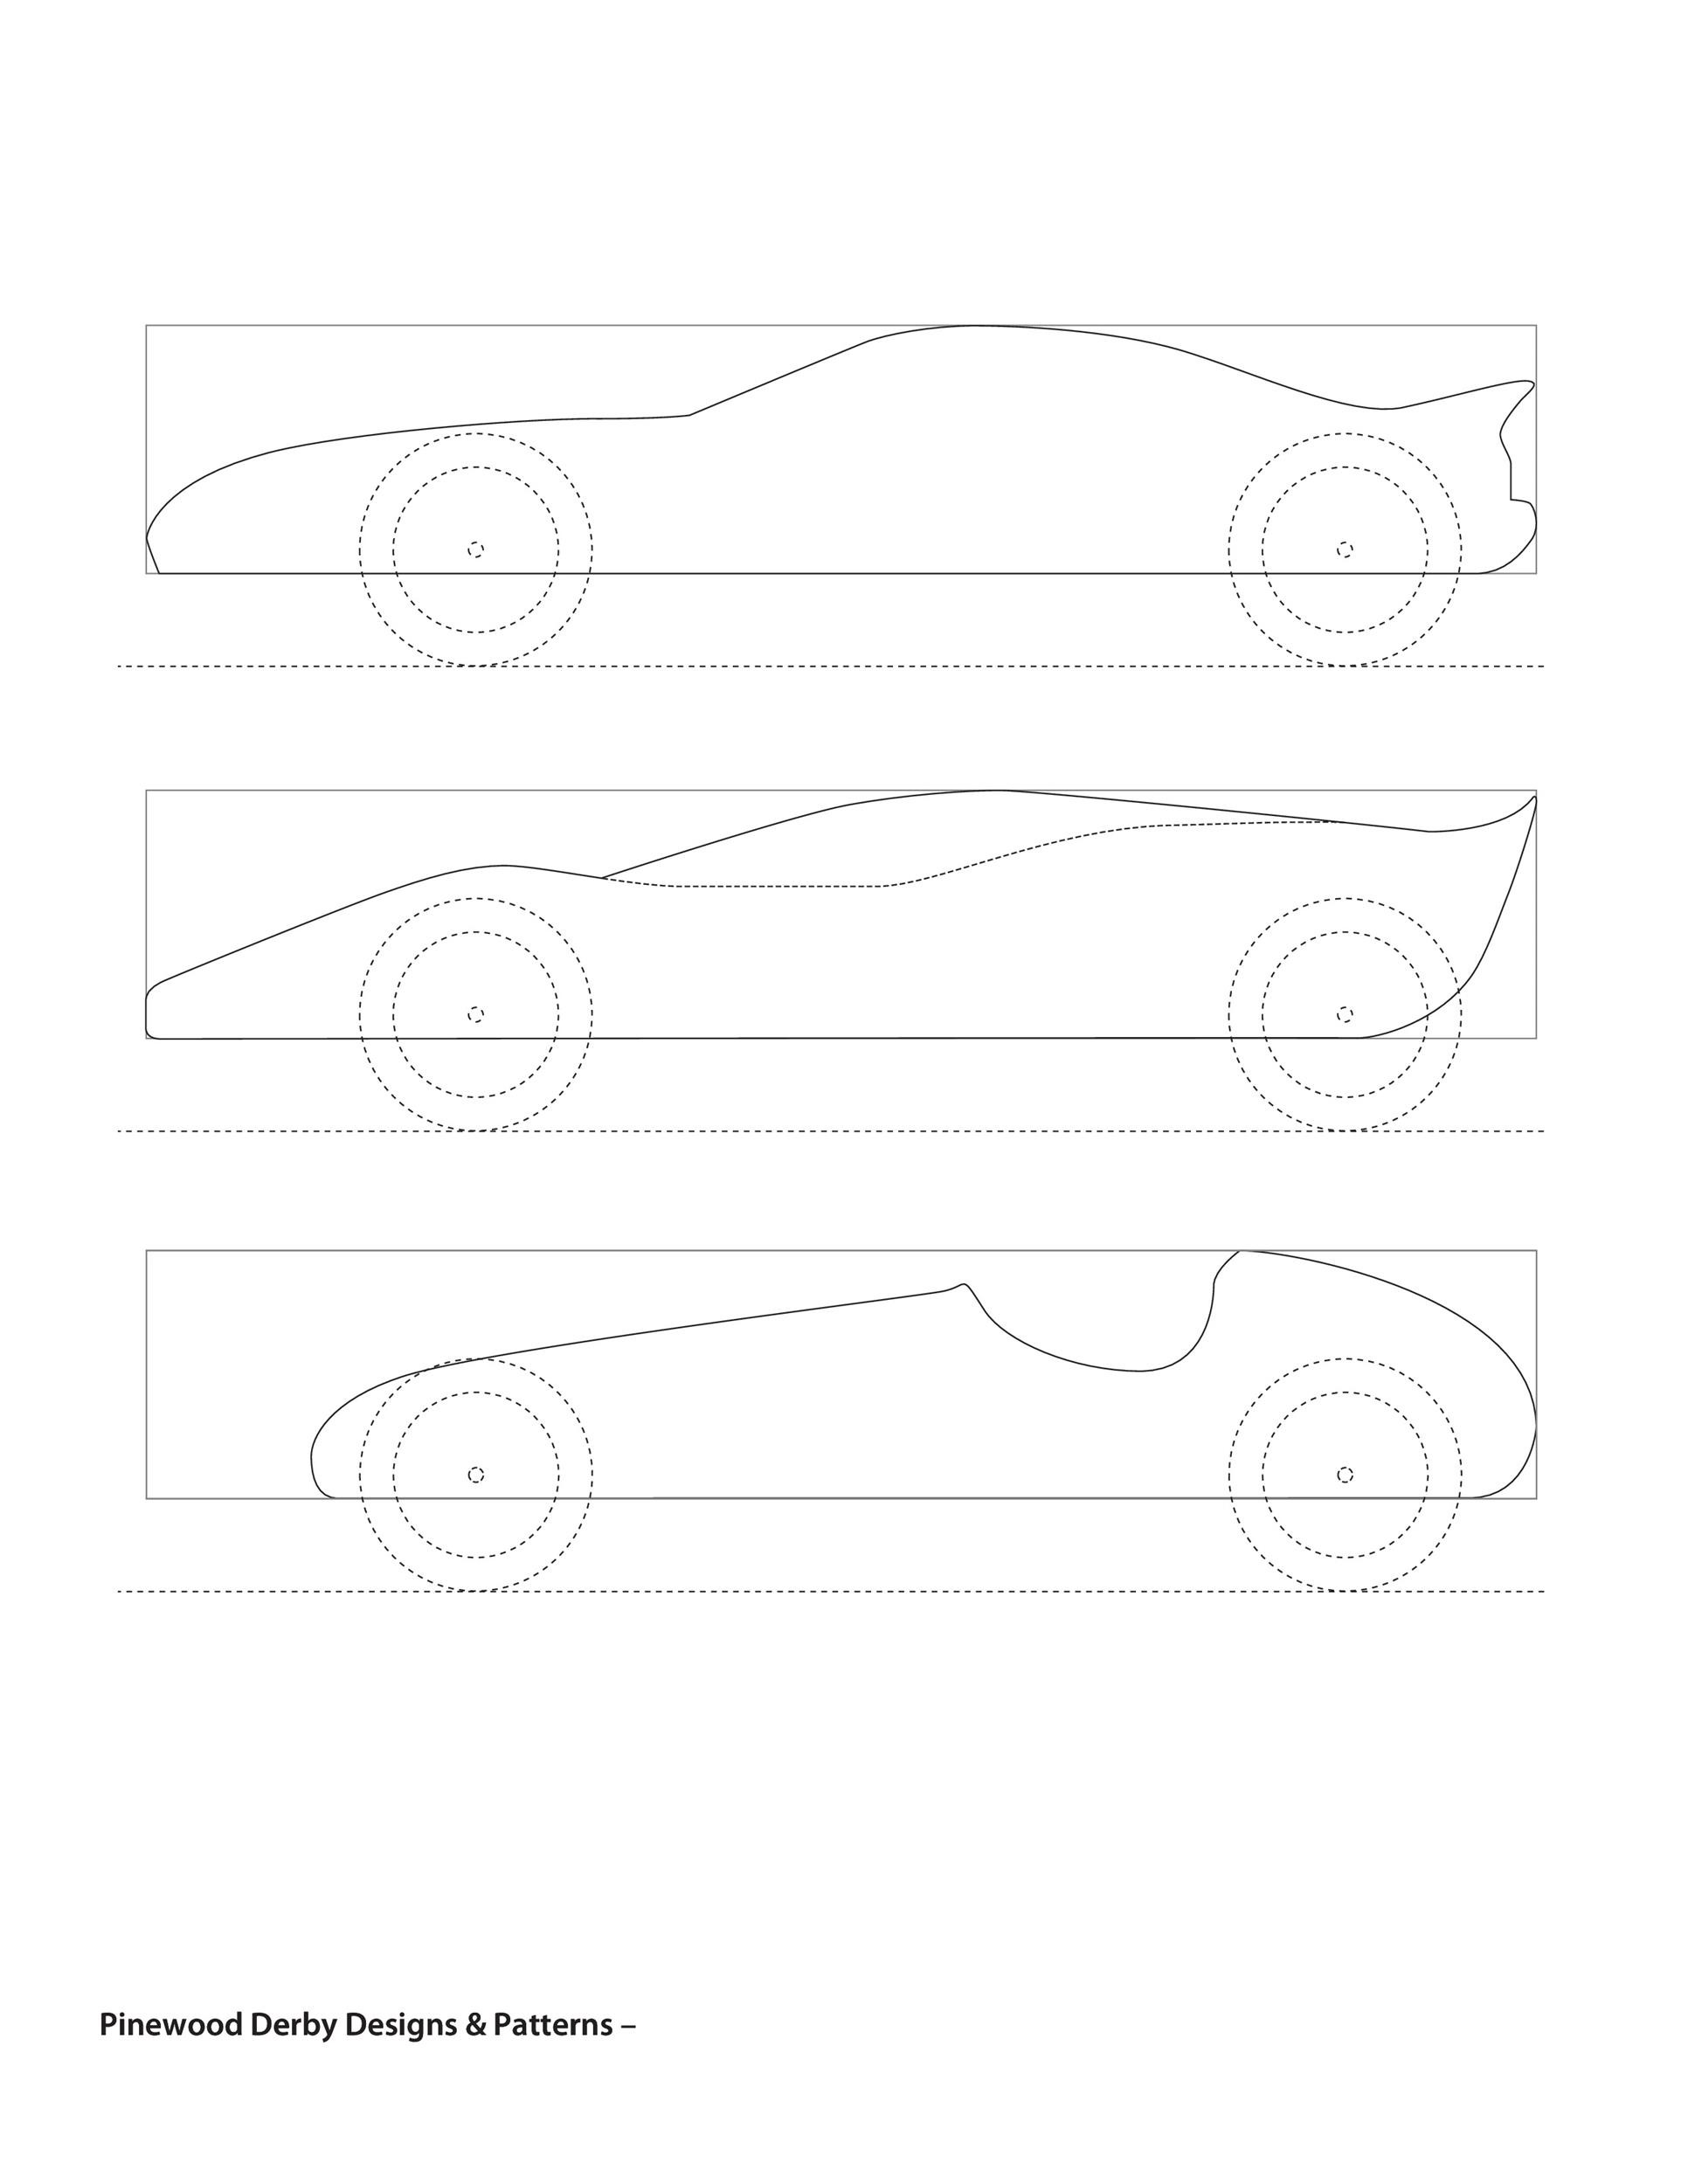 Astounding image intended for printable pinewood derby templates